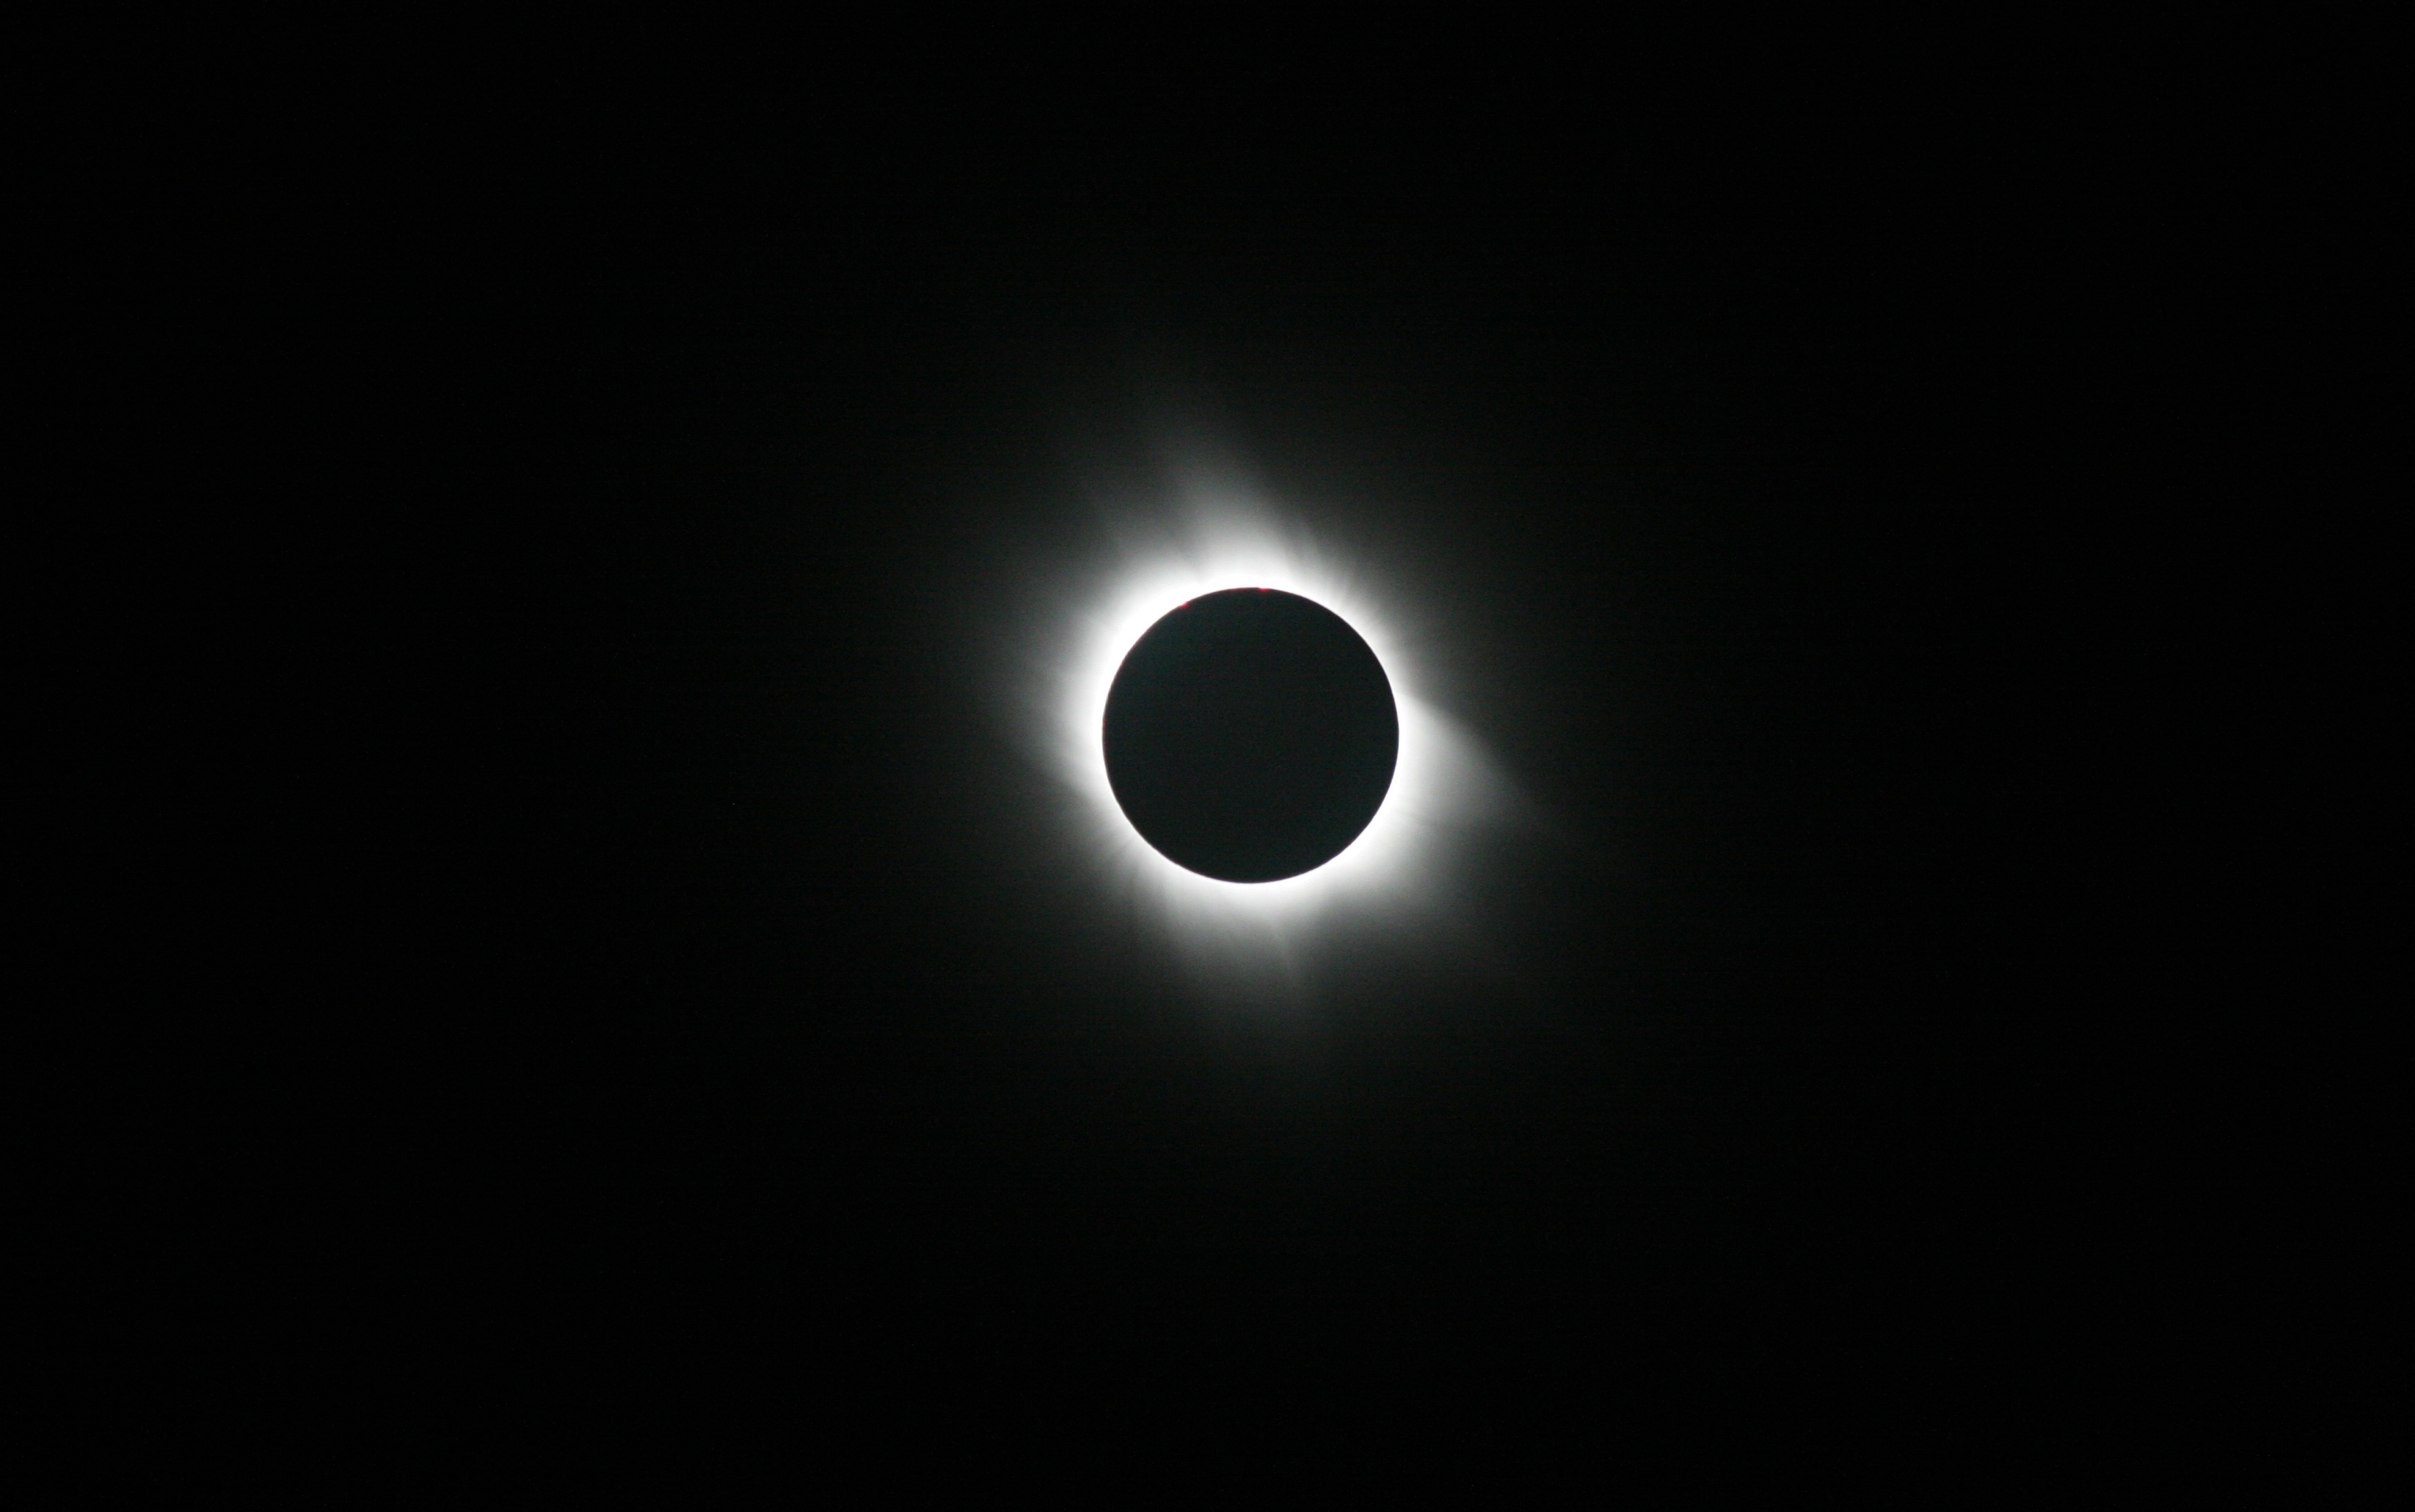 Almost every 18 months, a total solar eclipse is visible to some part of the world. However, the United States hasn't had a total solar eclipse since 1994. For the first time during the 21st century, a total solar eclipse, will be visible across the United States on Monday, Aug. 21. 